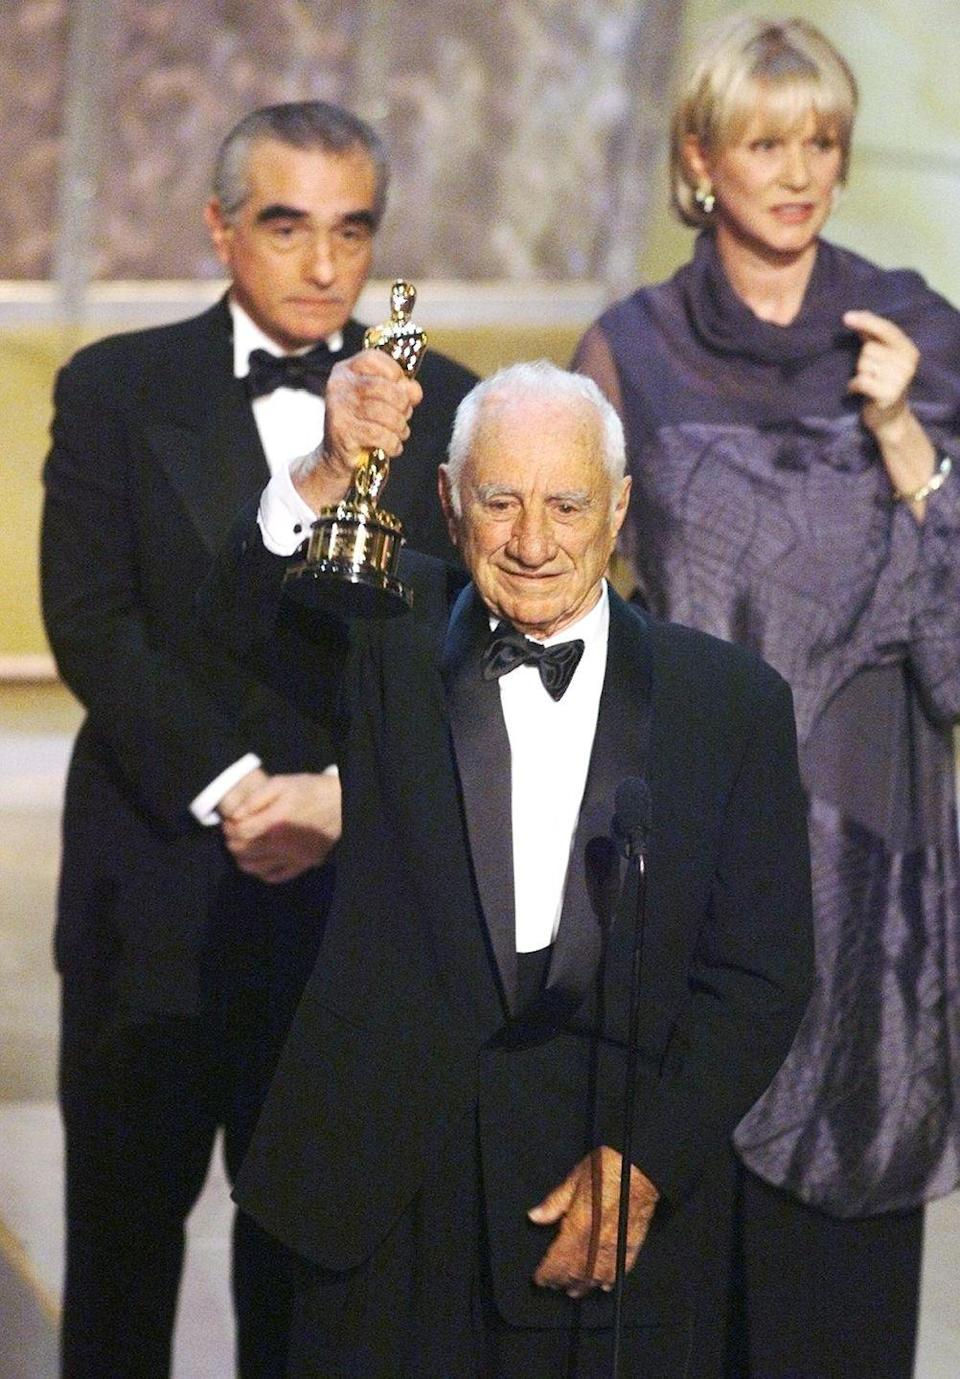 """<p><a href=""""http://articles.latimes.com/1999/mar/22/news/mn-19738"""" rel=""""nofollow noopener"""" target=""""_blank"""" data-ylk=""""slk:Elia Kazan was a controversial figure"""" class=""""link rapid-noclick-resp"""">Elia Kazan was a controversial figure</a> in Hollywood. He had previously testified in front of the House Un-American Activities Committee in 1952 at the height of the Red Scare, telling them about eight of his old friends who had been members of the Communist Party, <a href=""""https://en.wikipedia.org/wiki/Elia_Kazan"""" rel=""""nofollow noopener"""" target=""""_blank"""" data-ylk=""""slk:effectively ending"""" class=""""link rapid-noclick-resp"""">effectively ending</a> their careers. Because of this, there were protestors gathered outside the ceremony to oppose Kazan receiving the award. Notably, actors Nick Nolte, Ed Harris, and Amy Madigan made a point of staying in their seats and not applauding when Kazan took the stage. </p>"""